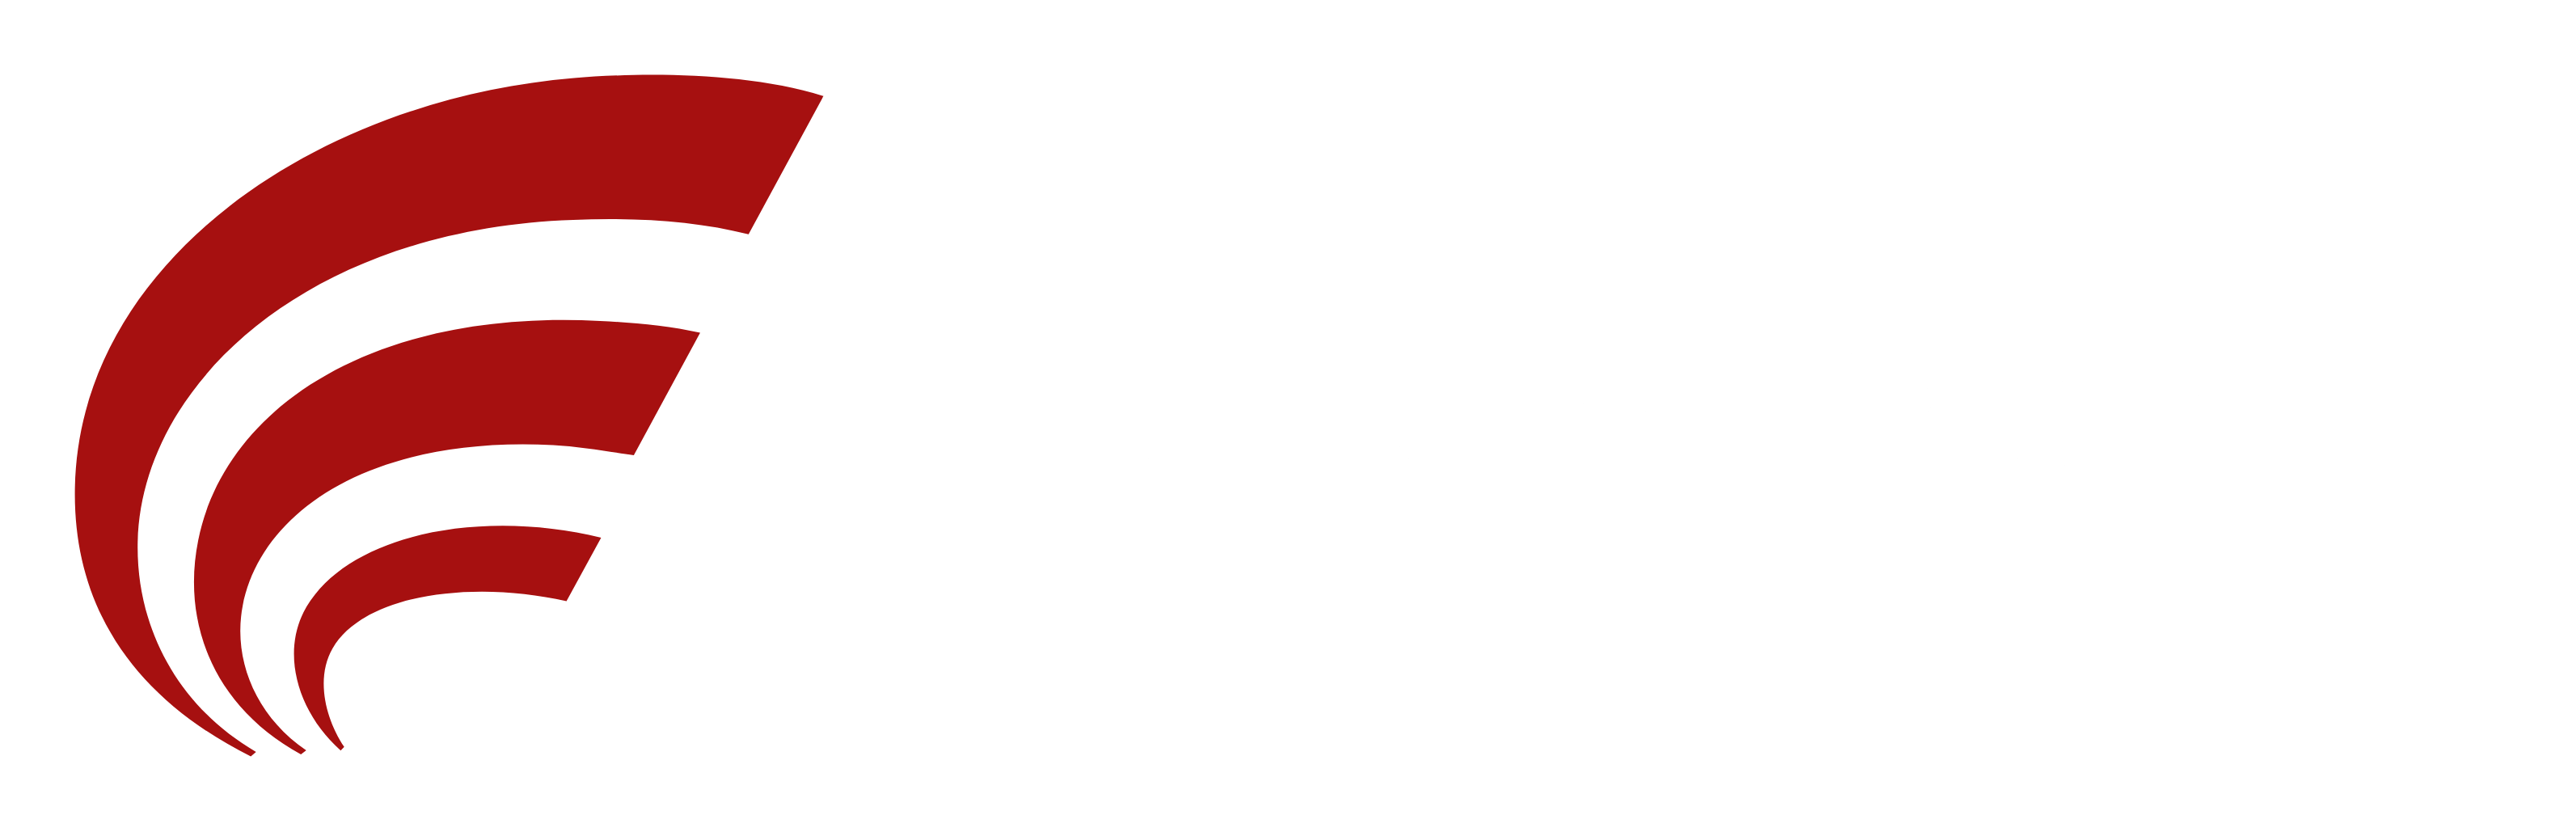 Halyard Financial